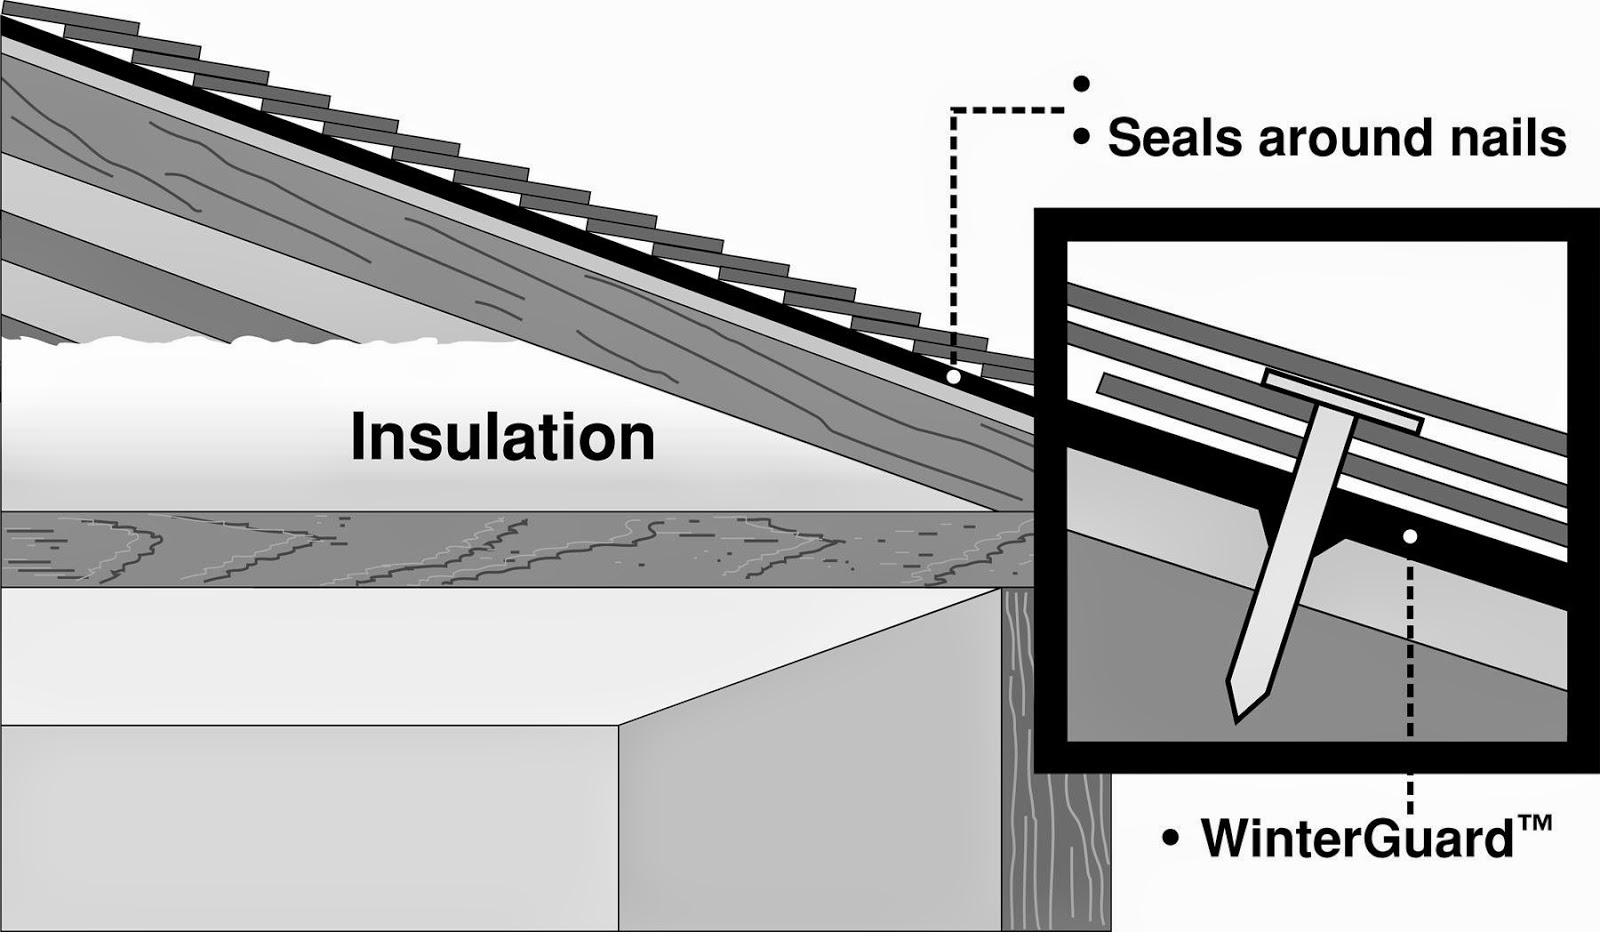 Nailing Through This Membrane Does Not Affect The Safety Of Your Roof  Either, Since The Product Has Been Engineered In Such A Way That When A  Nail Goes ...